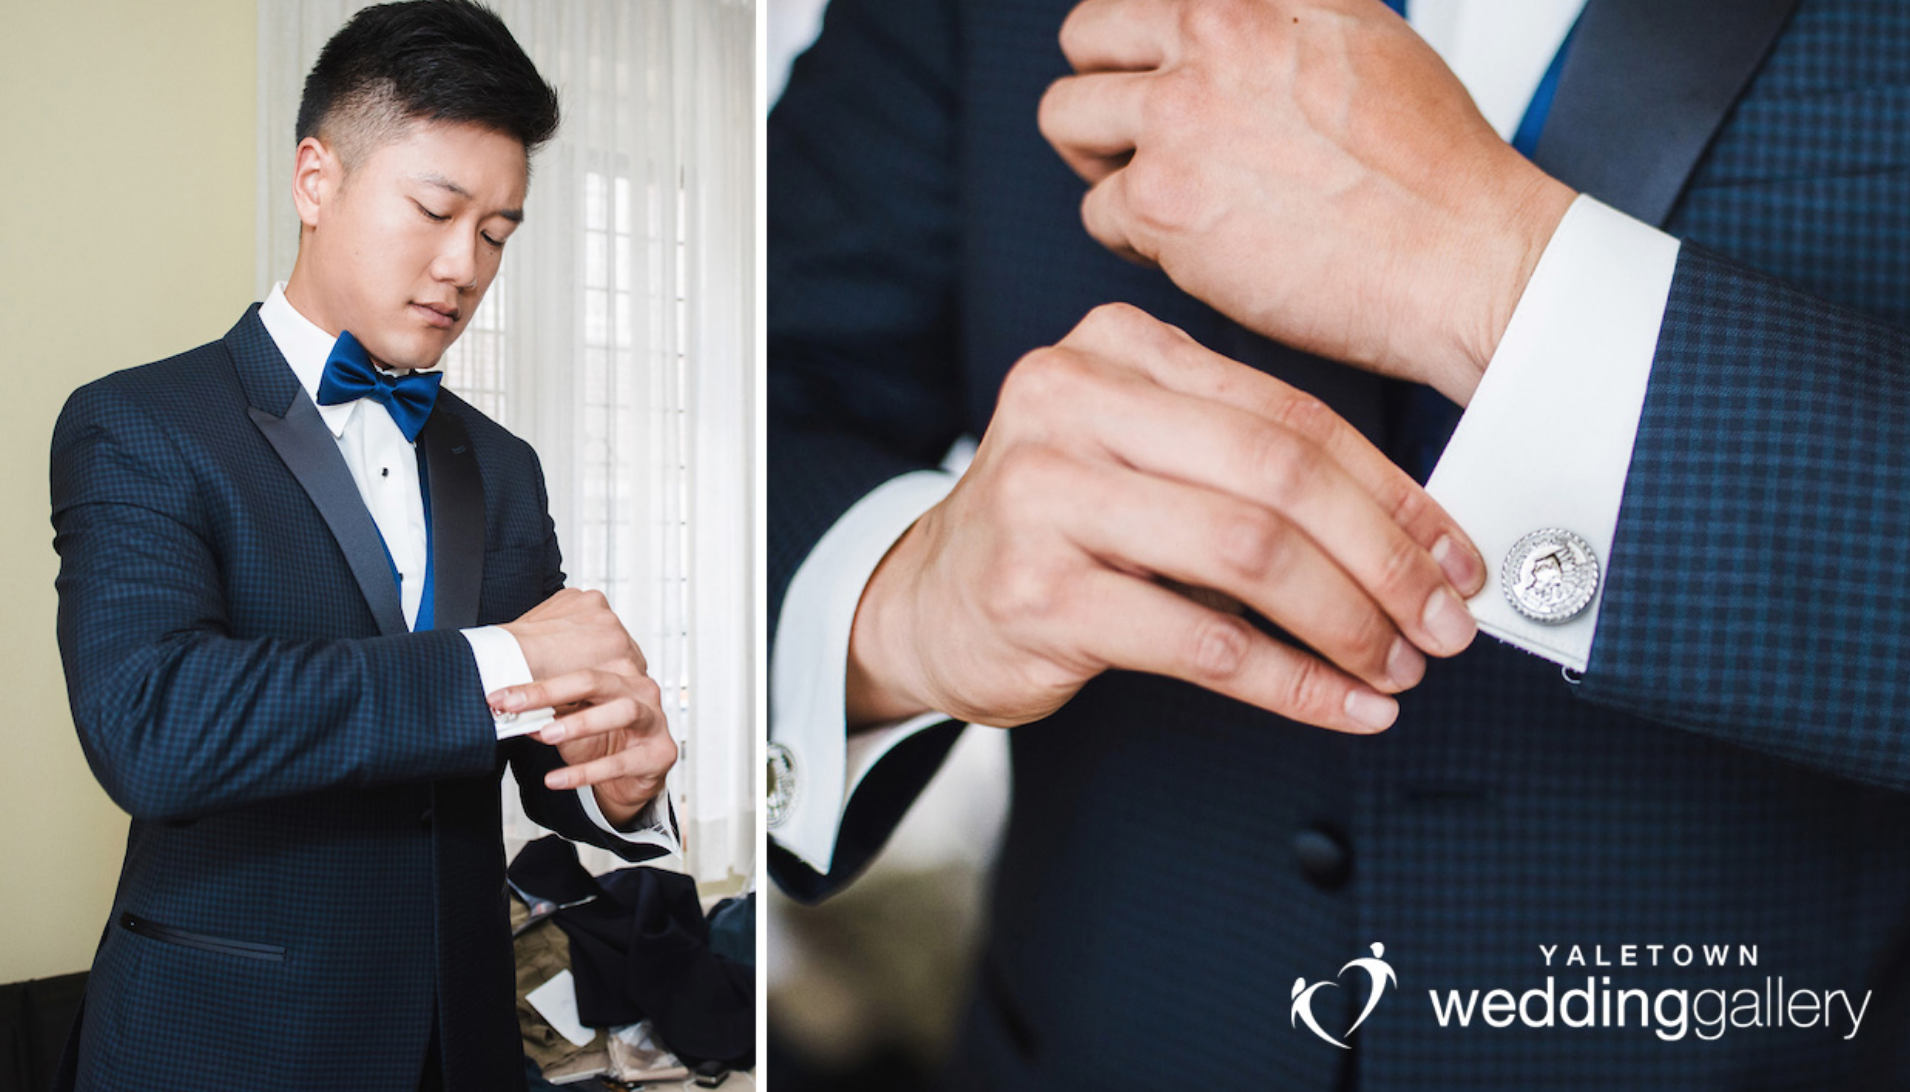 groom-getting-ready-wedding-yaletown-wedding-gallery-vancouver-wedding-photographers-vancouver-wedding-photo